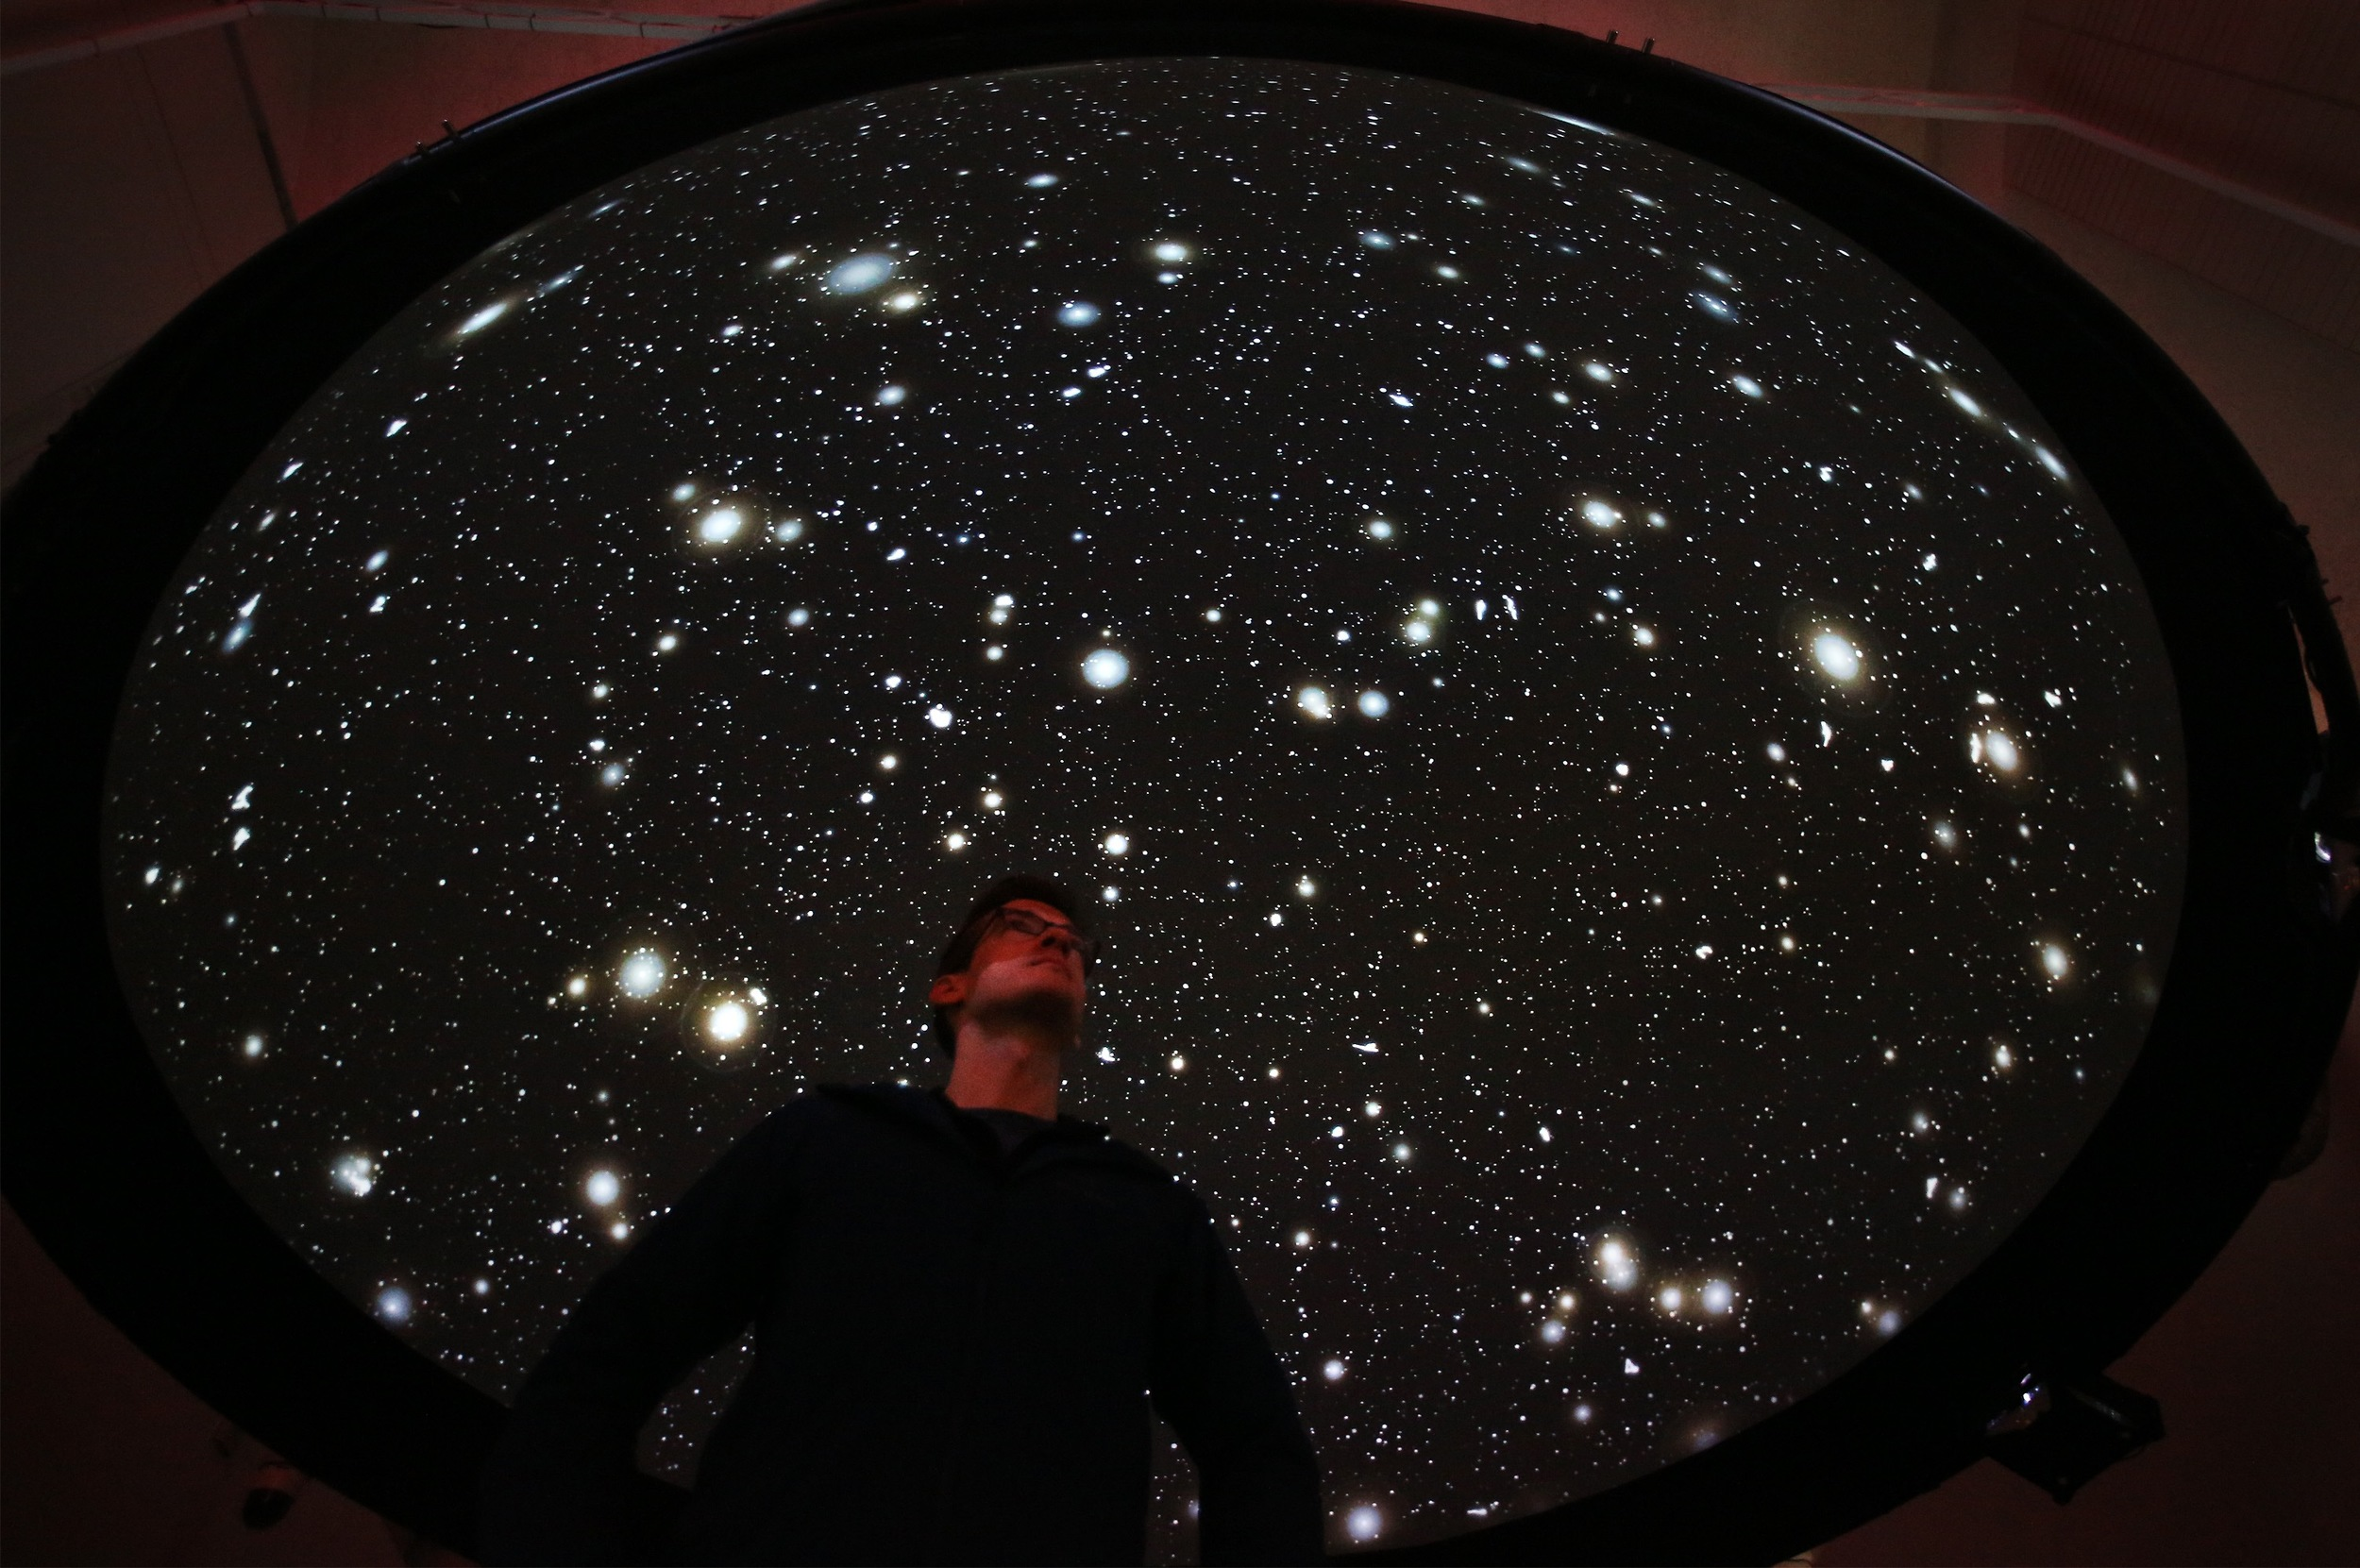 A visitor underneath the 'Black Shoals: Dark Matter'- a stock market planetarium created by Lise Autogena and Joshua Portway at the Big Bang Data exhibition at Somerset House on December 2, 2015 in London, England.  (Photo by Peter Macdiarmid/Getty Images for Somerset House)